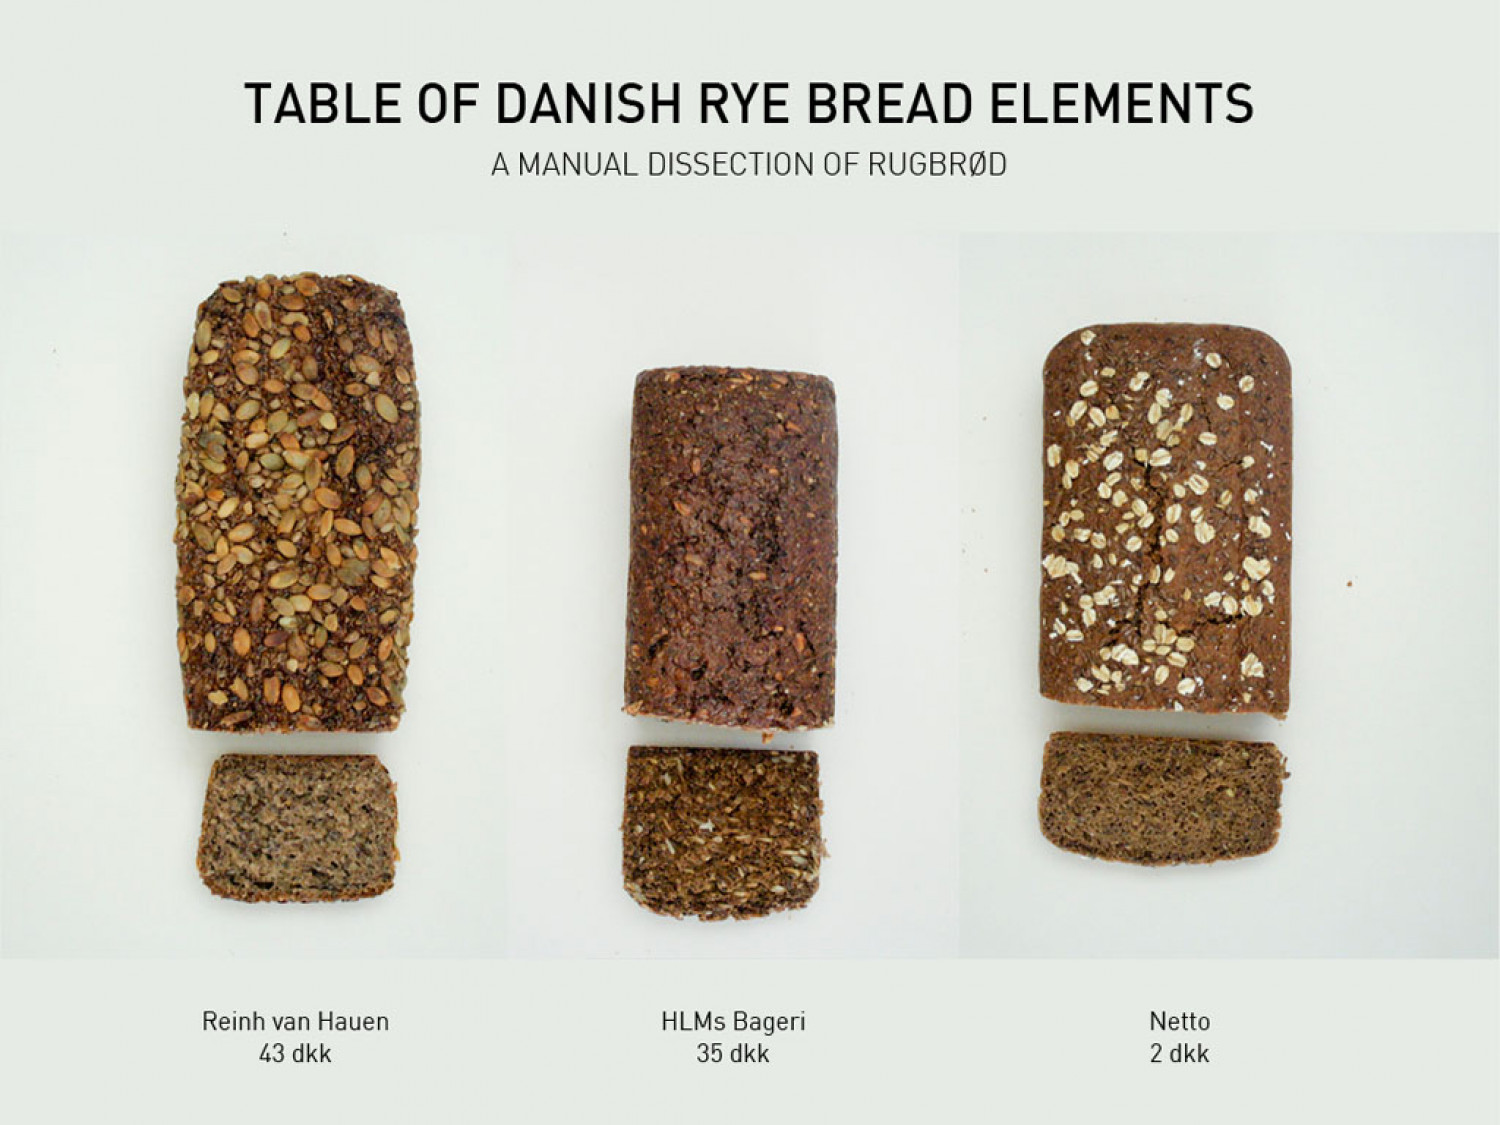 Danish Rye Bread: Table of Elements Infographic